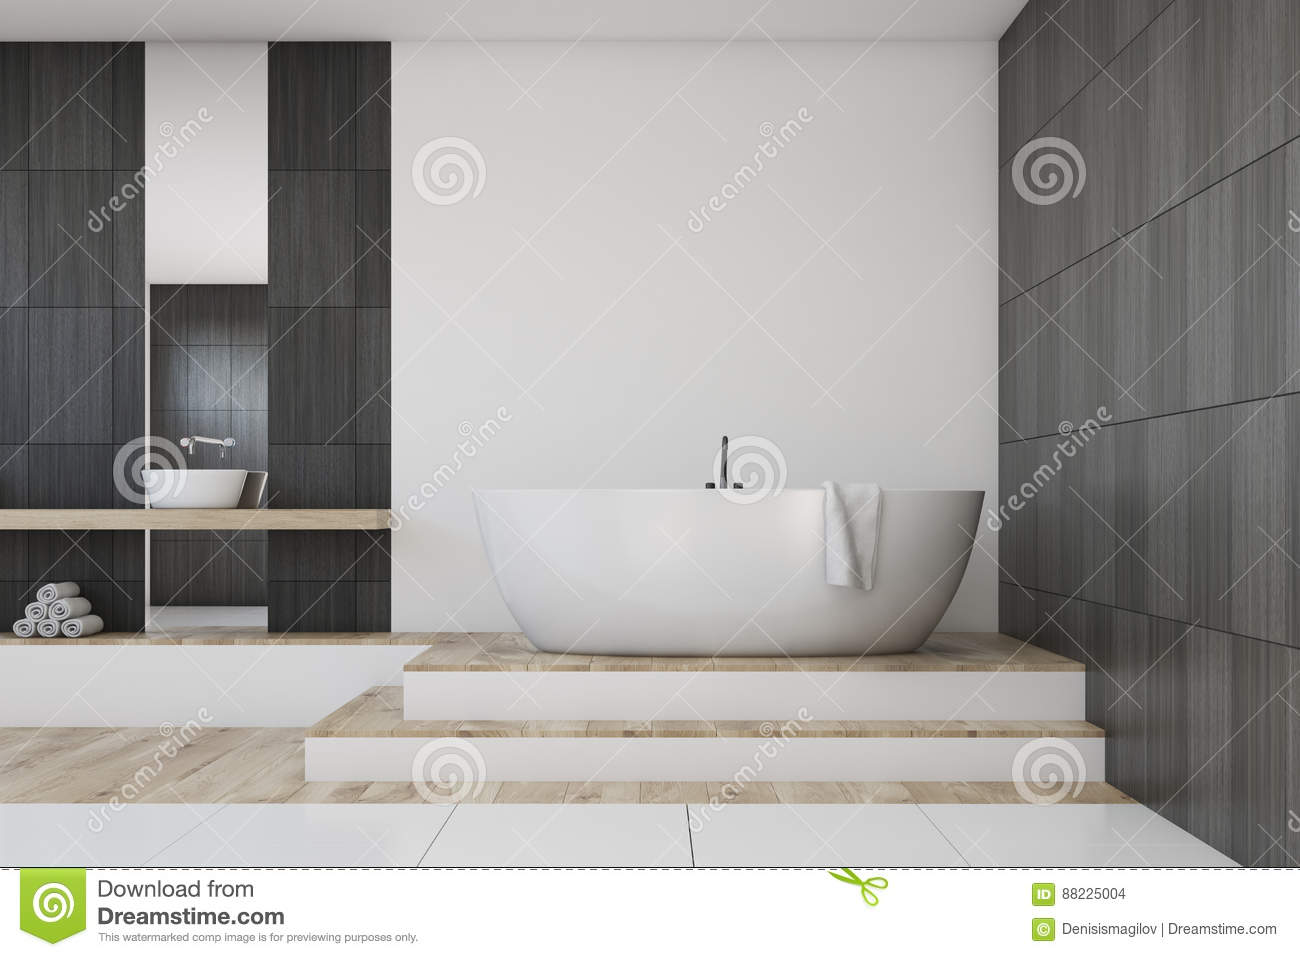 Bathroom With A Mirror, Black Stock Illustration - Illustration of ...